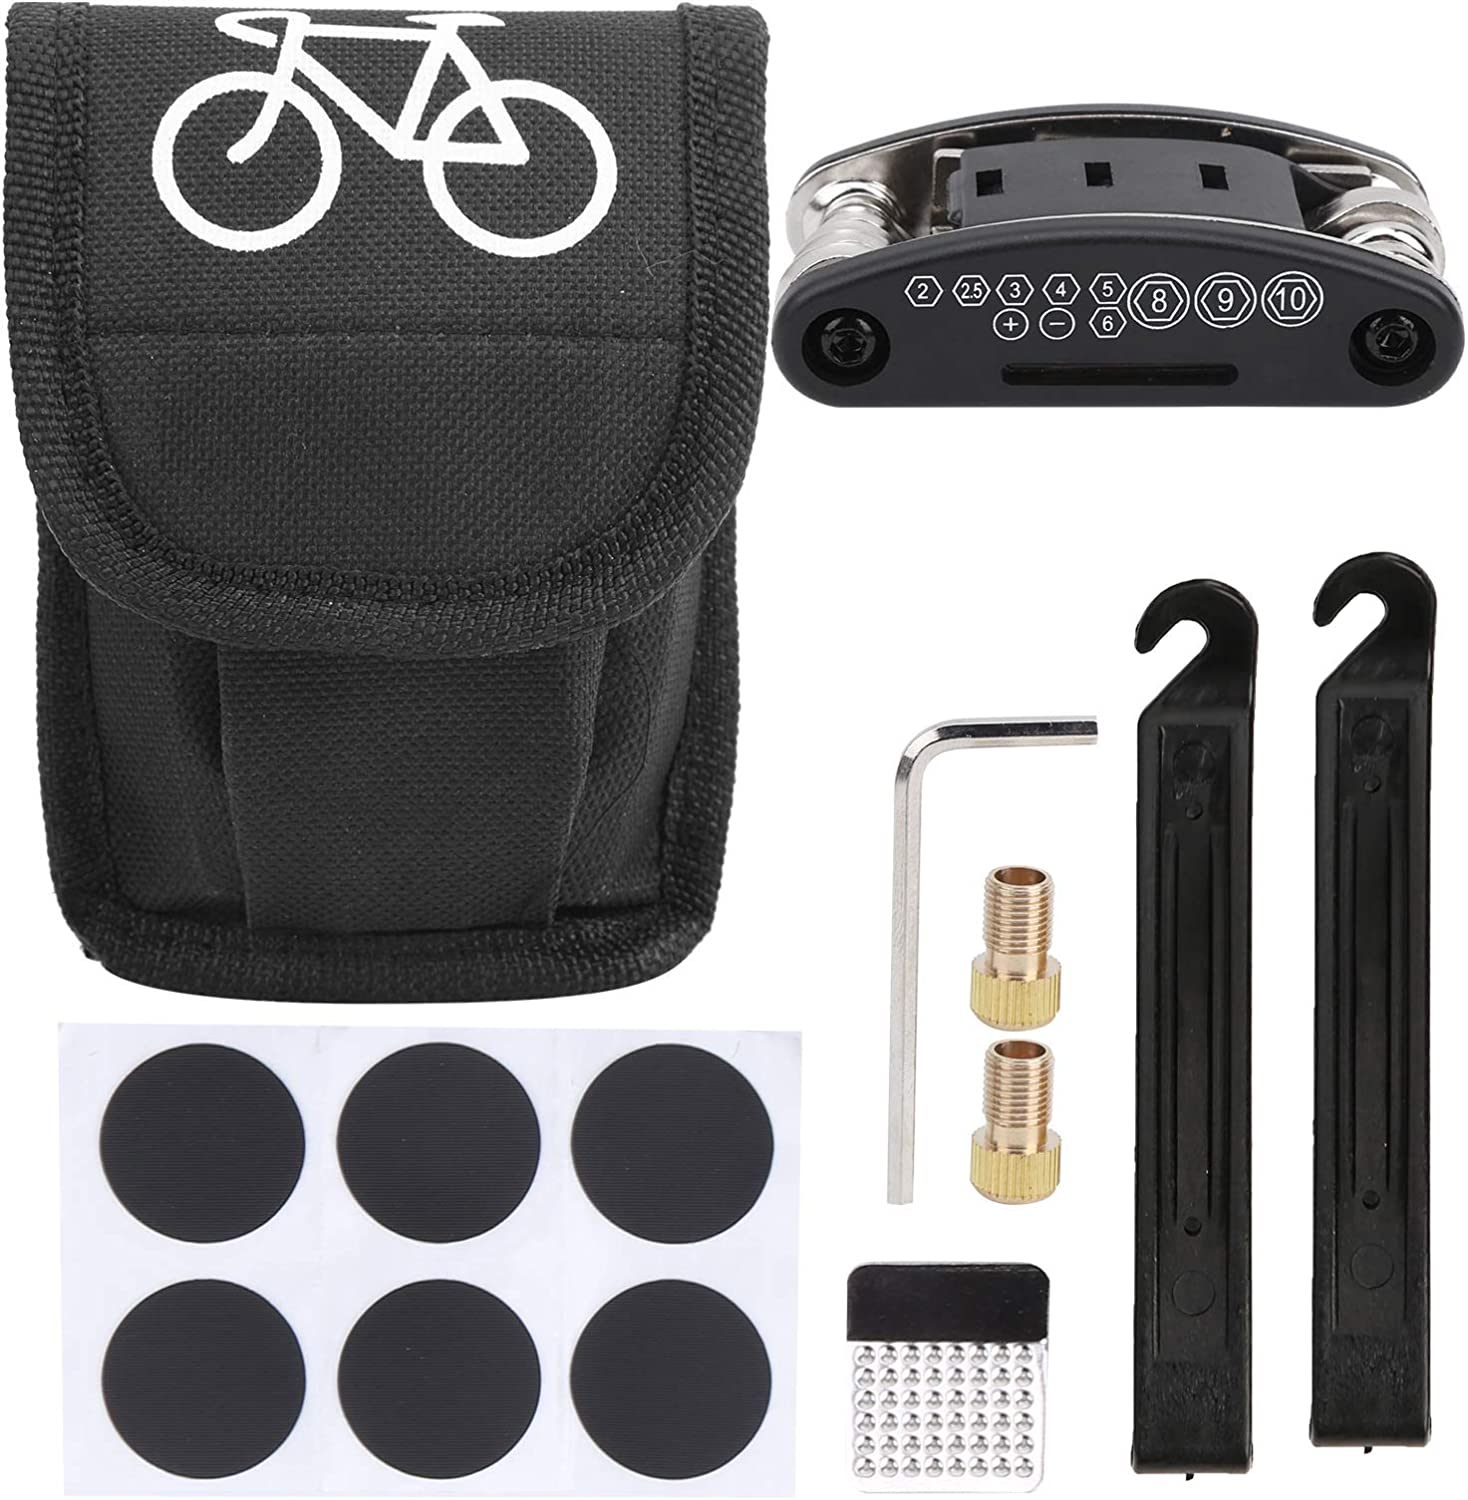 VGEBY Bicycle Max 70% OFF Tire Repair Ti Fast Tools Kit In stock